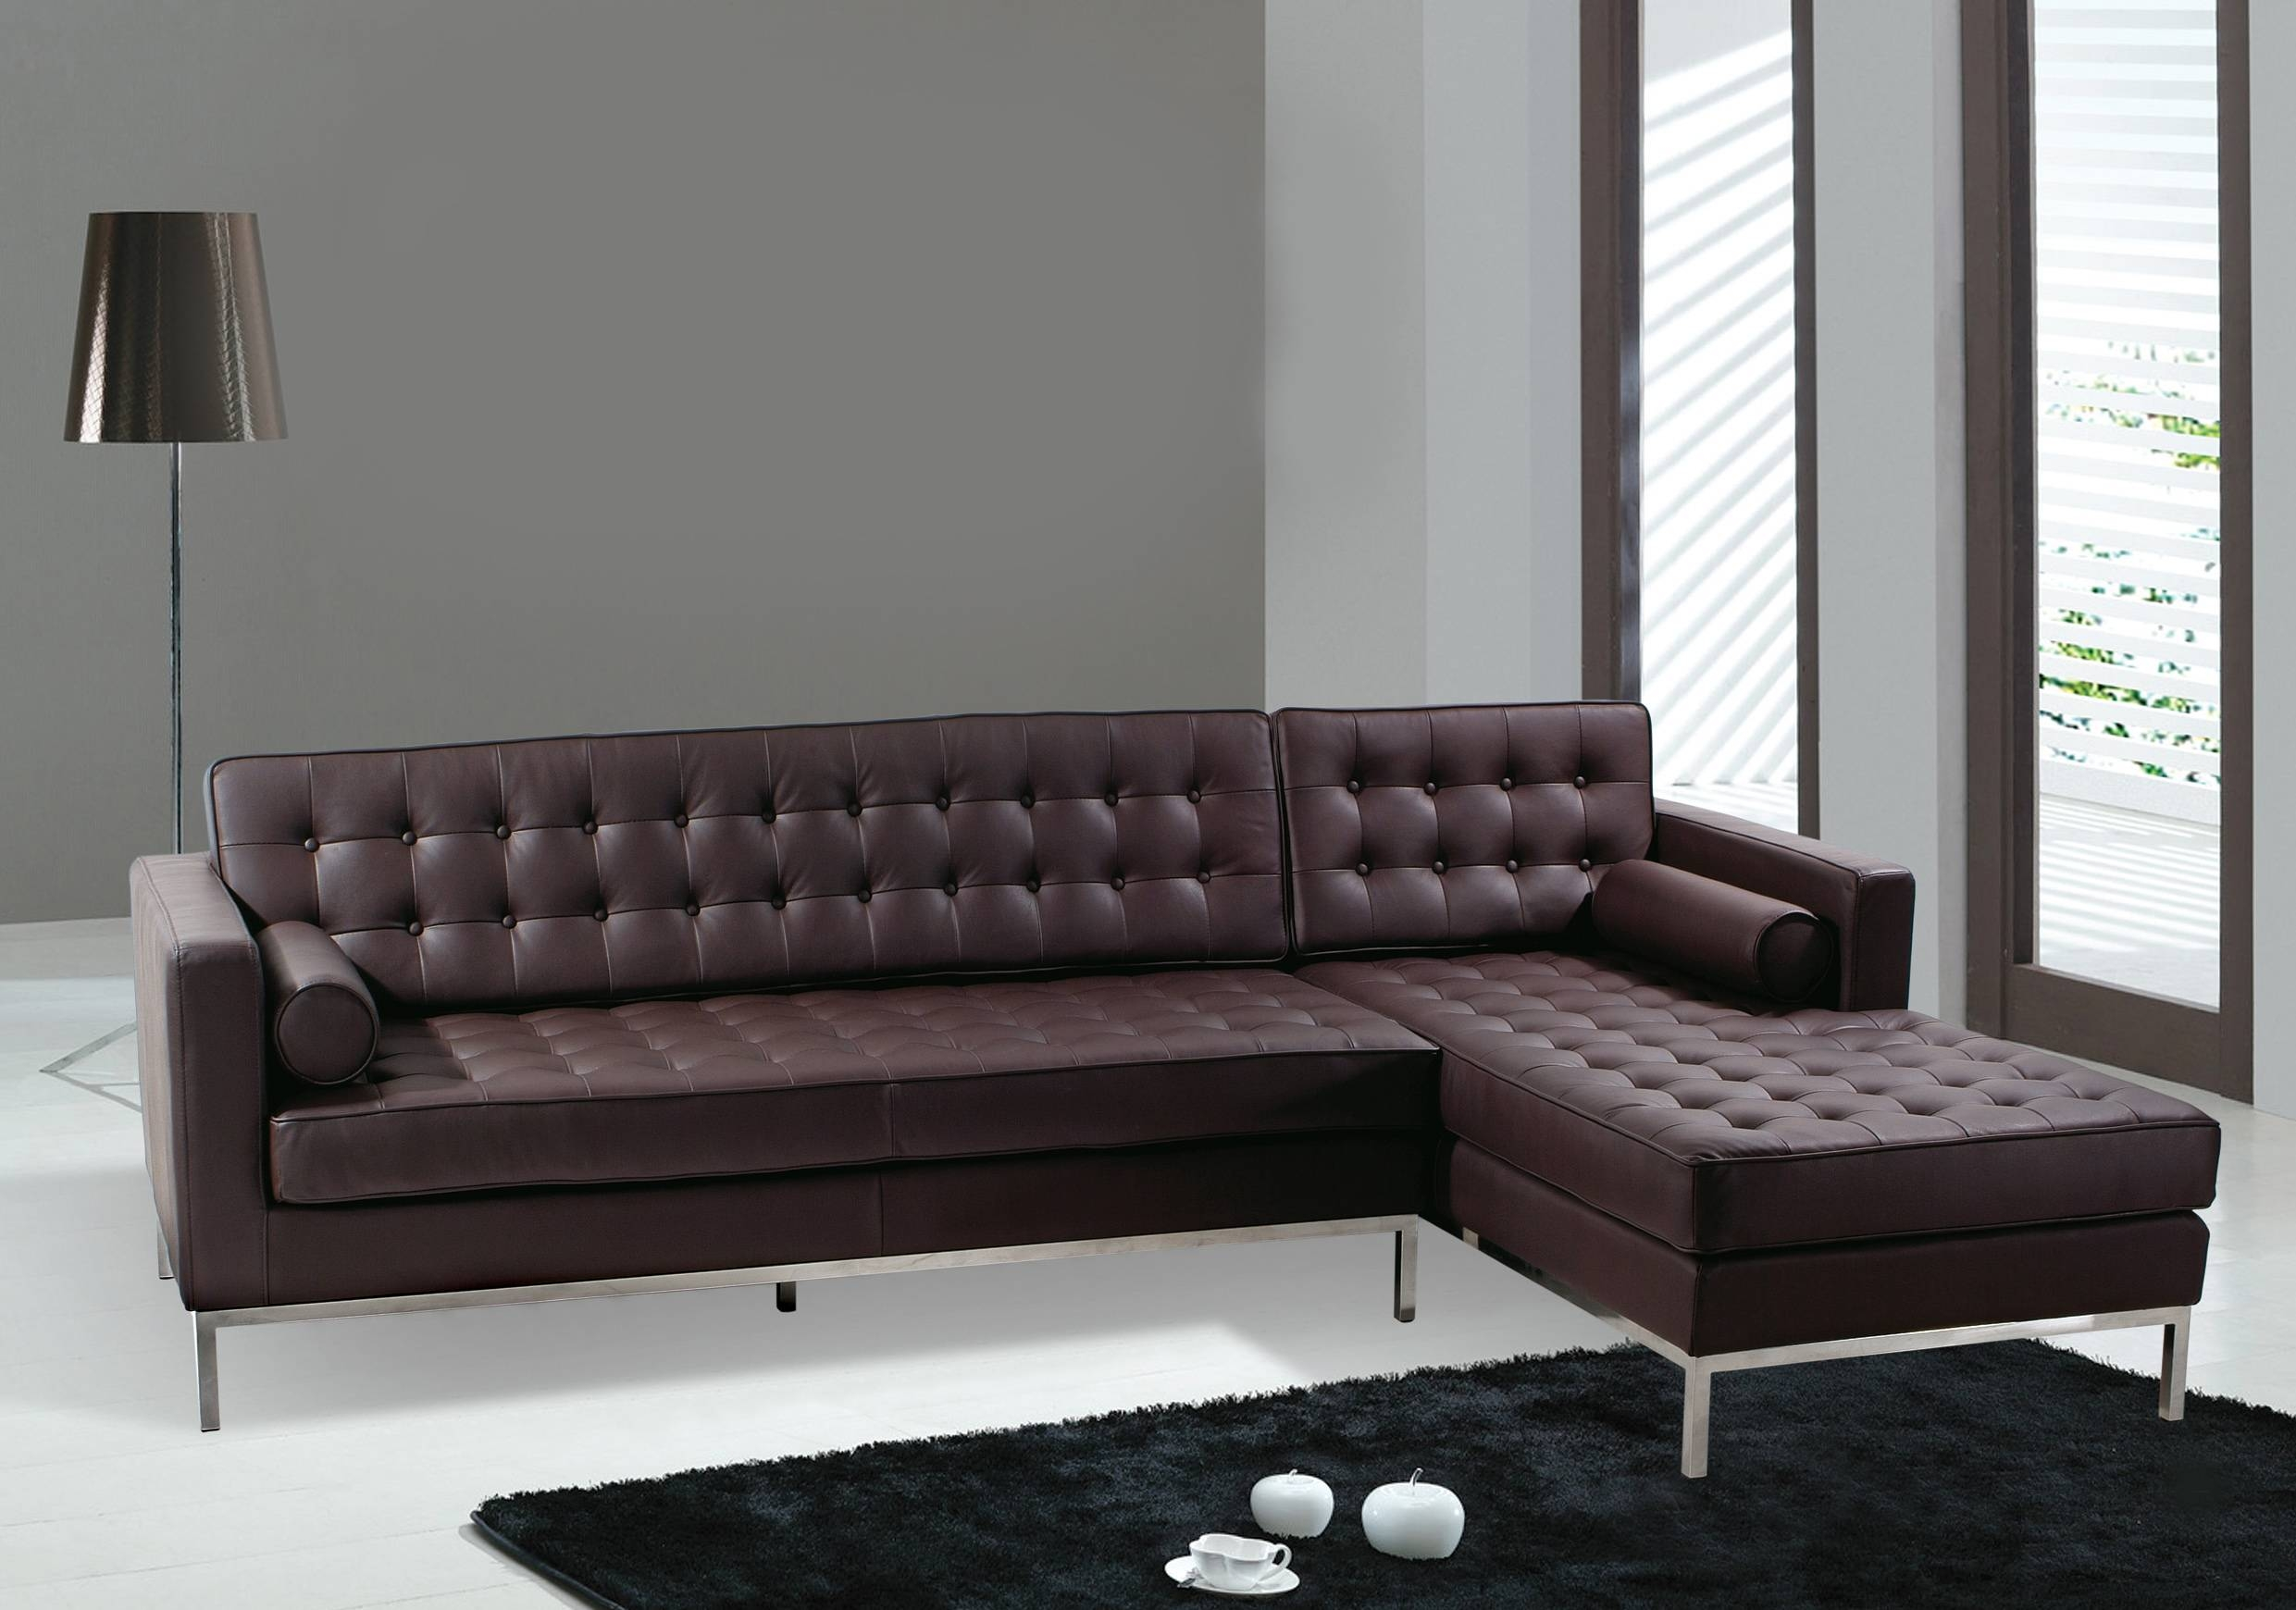 Remarkable Brown Leather Sectional Sofa Clearance 66 In Circular With Jcpenney Sectional Sofas (View 14 of 15)